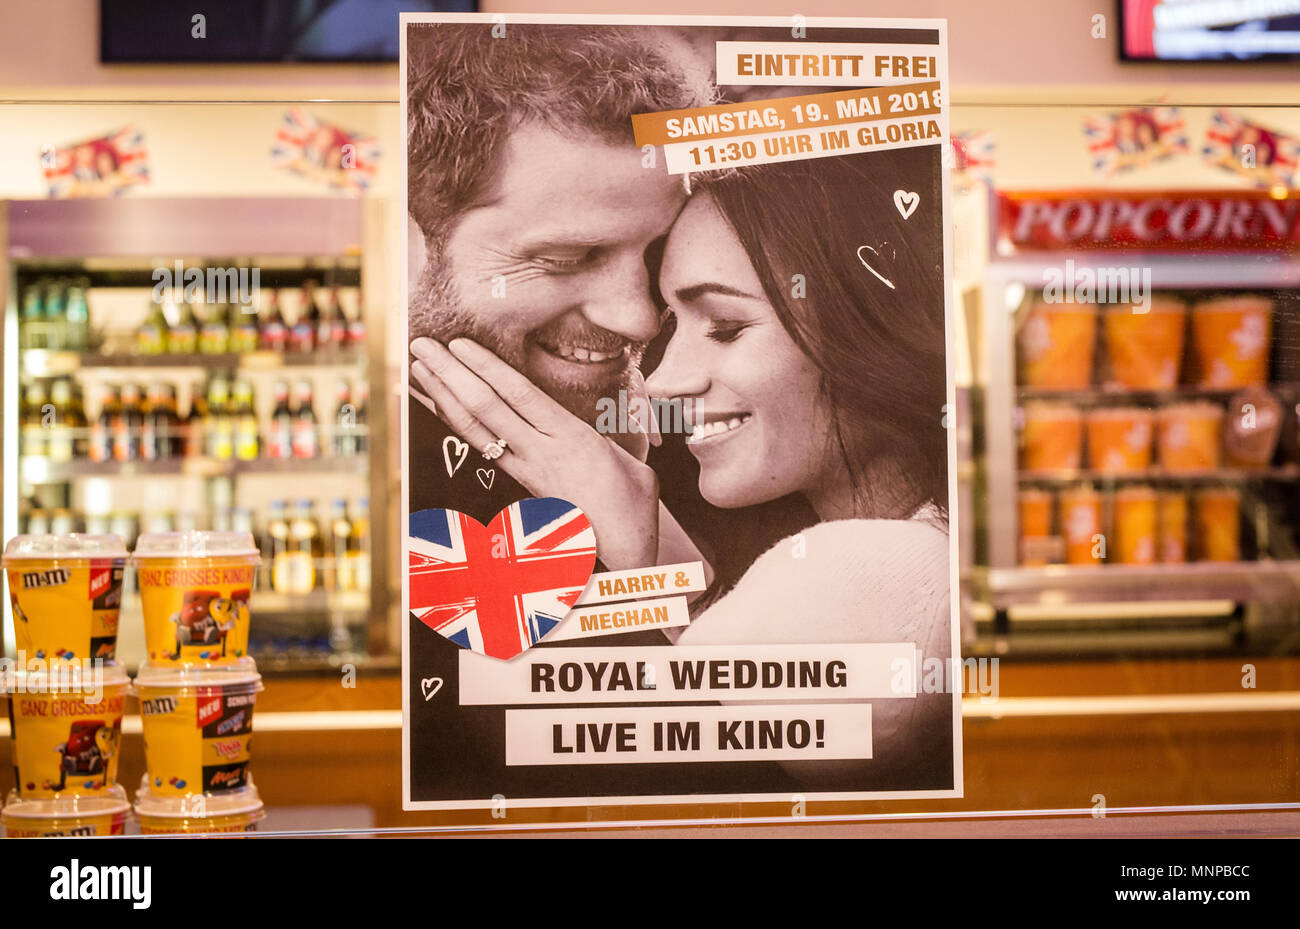 Stuttgart, Germany, 19 May 2018. An advertising poster informs cinema visitors about the royal wedding of Prince Harry and Meghan Markle, which they can watch for free at the Gloria cinema. Photo: Christoph Schmidt/dpa Credit: dpa picture alliance/Alamy Live News - Stock Image